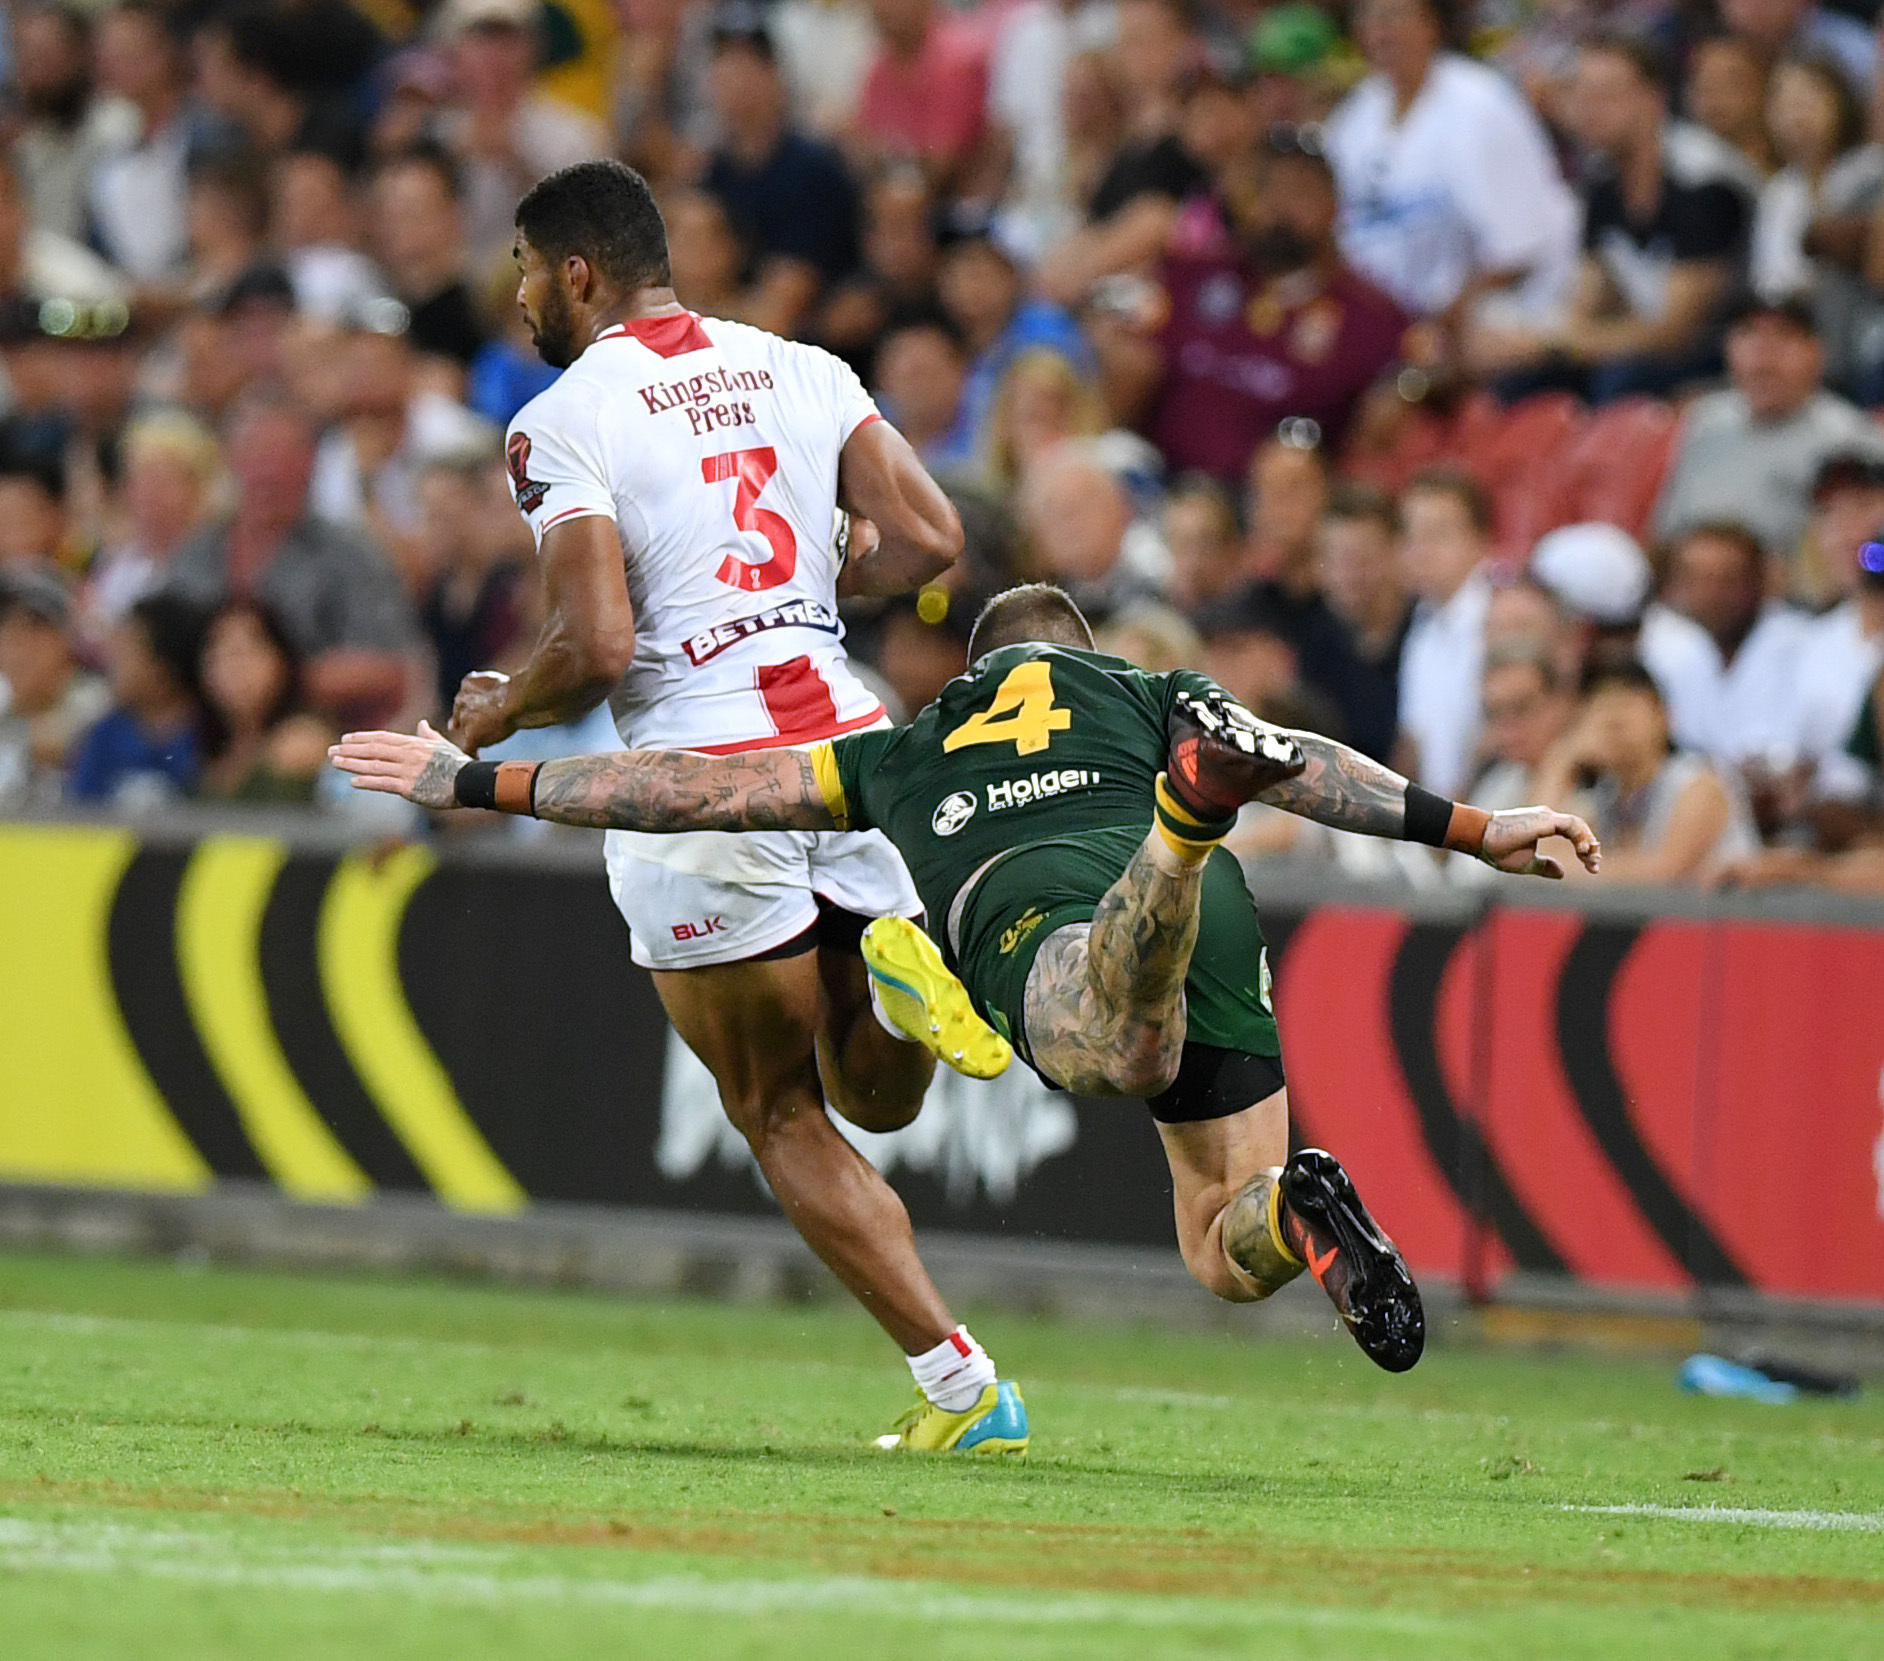 Handout photo provided by NRL Imagery of Australia's Josh Dugan Tackles England's Kallum Watkins (left) during the final of the 2017 Rugby League World Cup at the Suncorp Stadium, Brisbane . PRESS ASSOCIATION Photo. Issue date: Saturday December 2